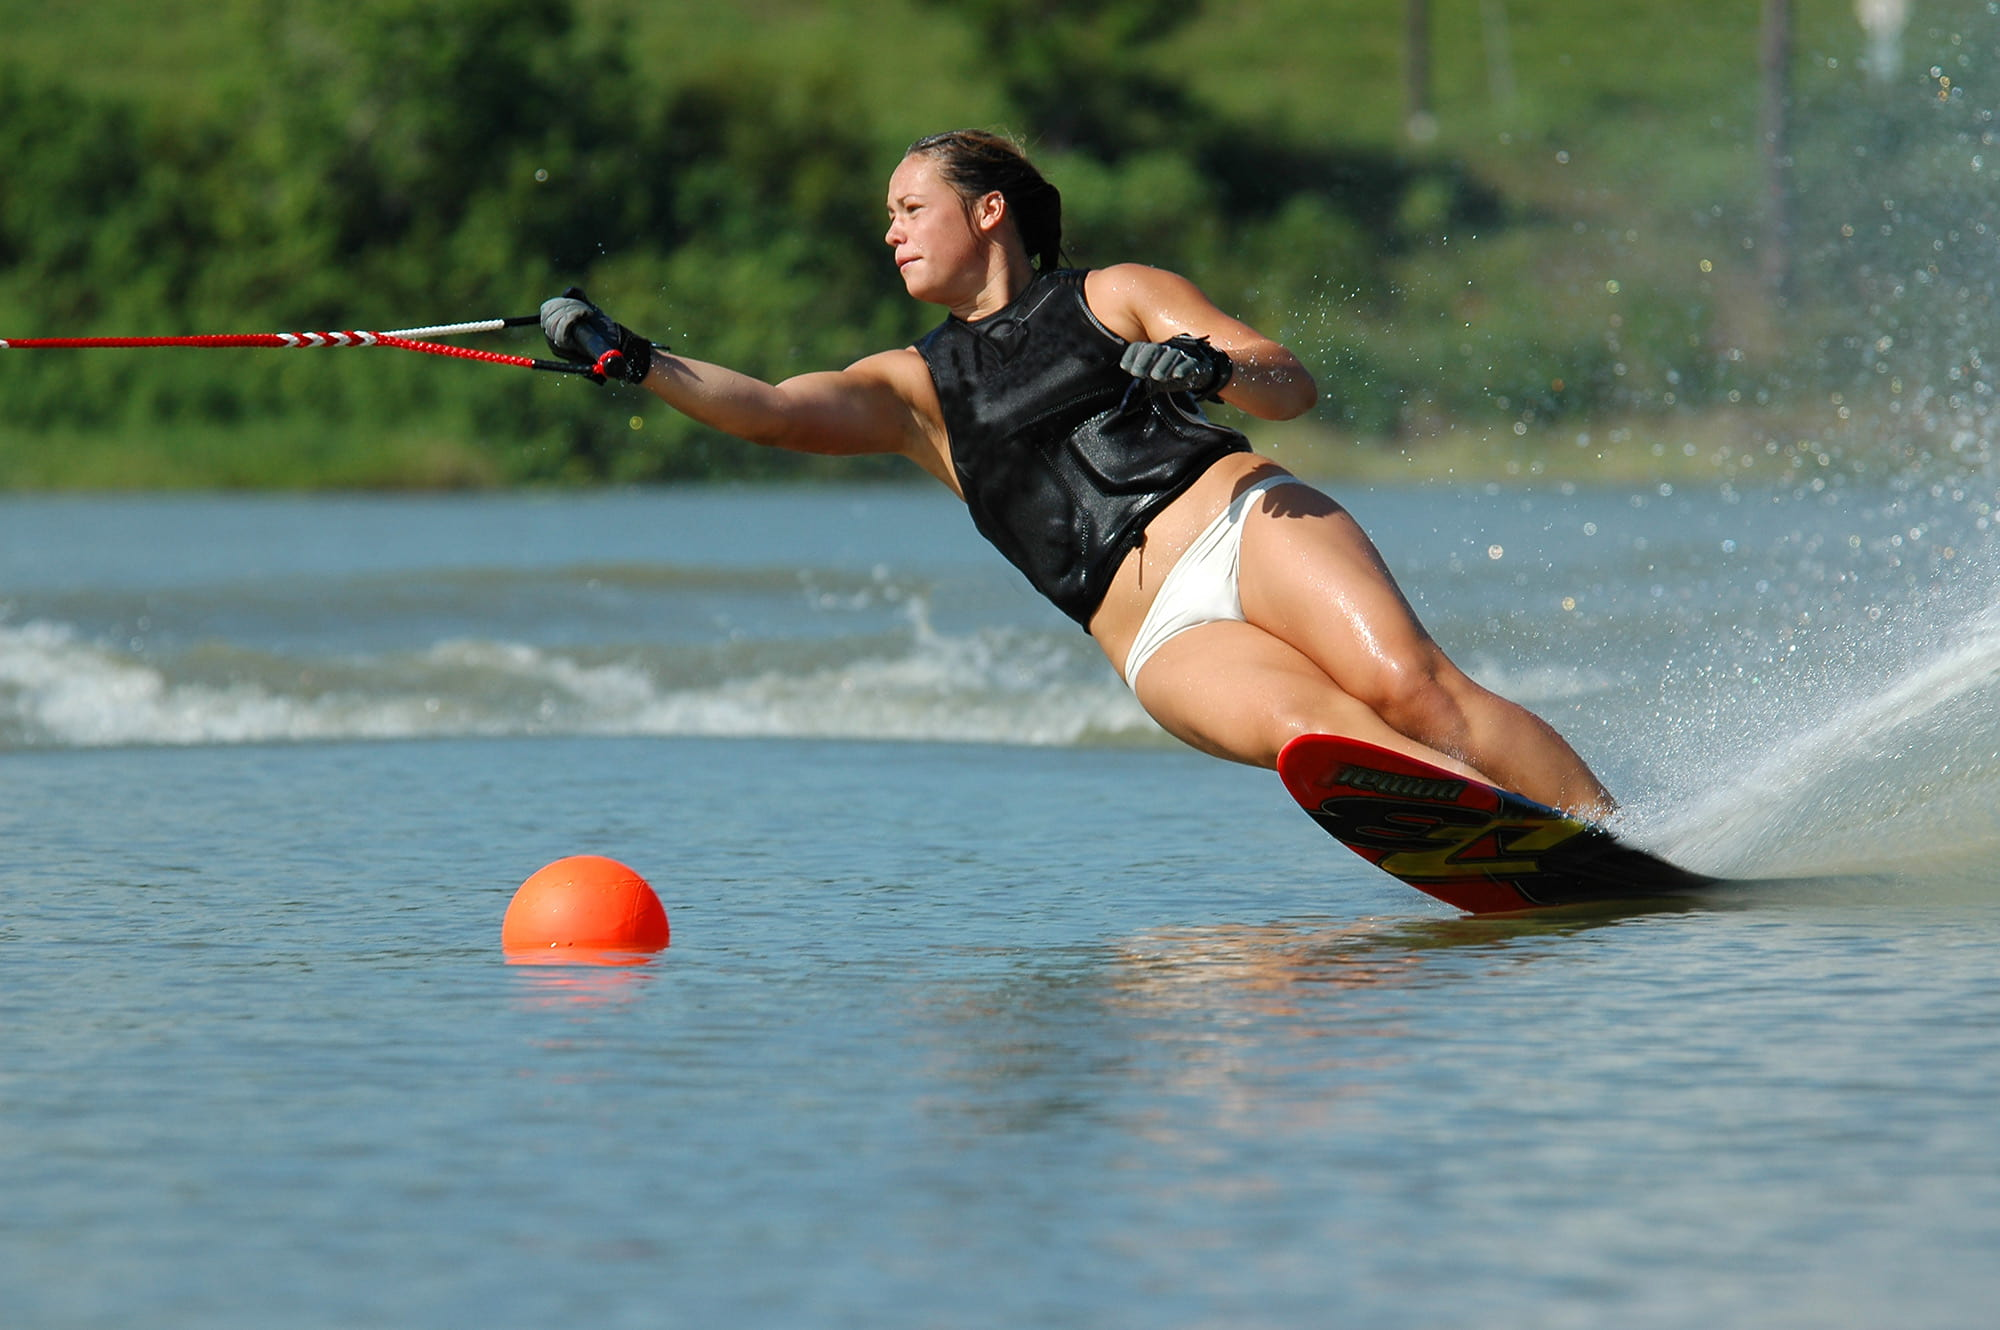 female slalom water skiing around buoy on lake, round a